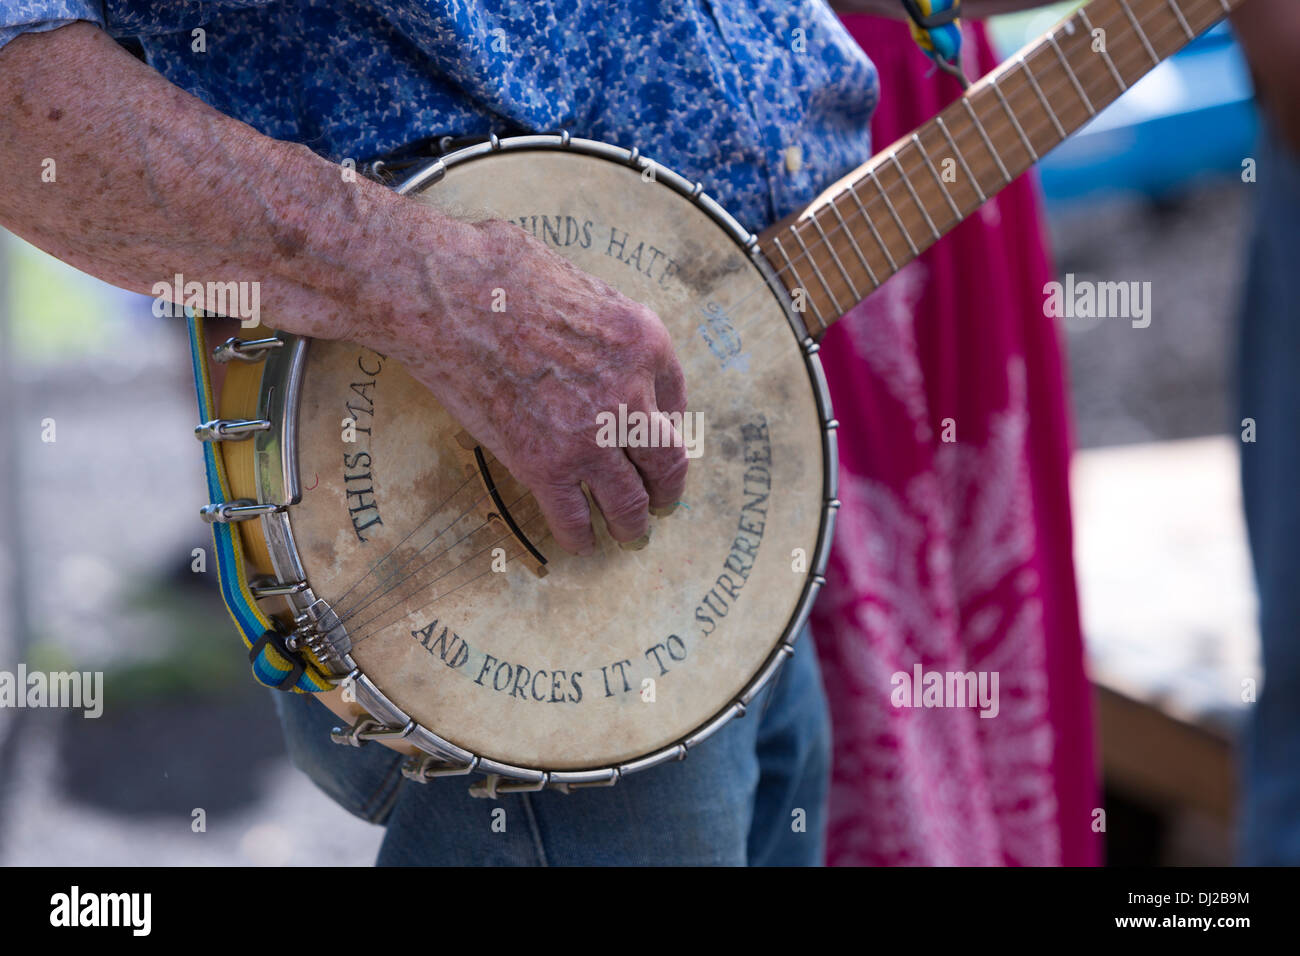 Pete Seeger banjo with 'This machine surrounds hate and forces it to surrender' - Stock Image